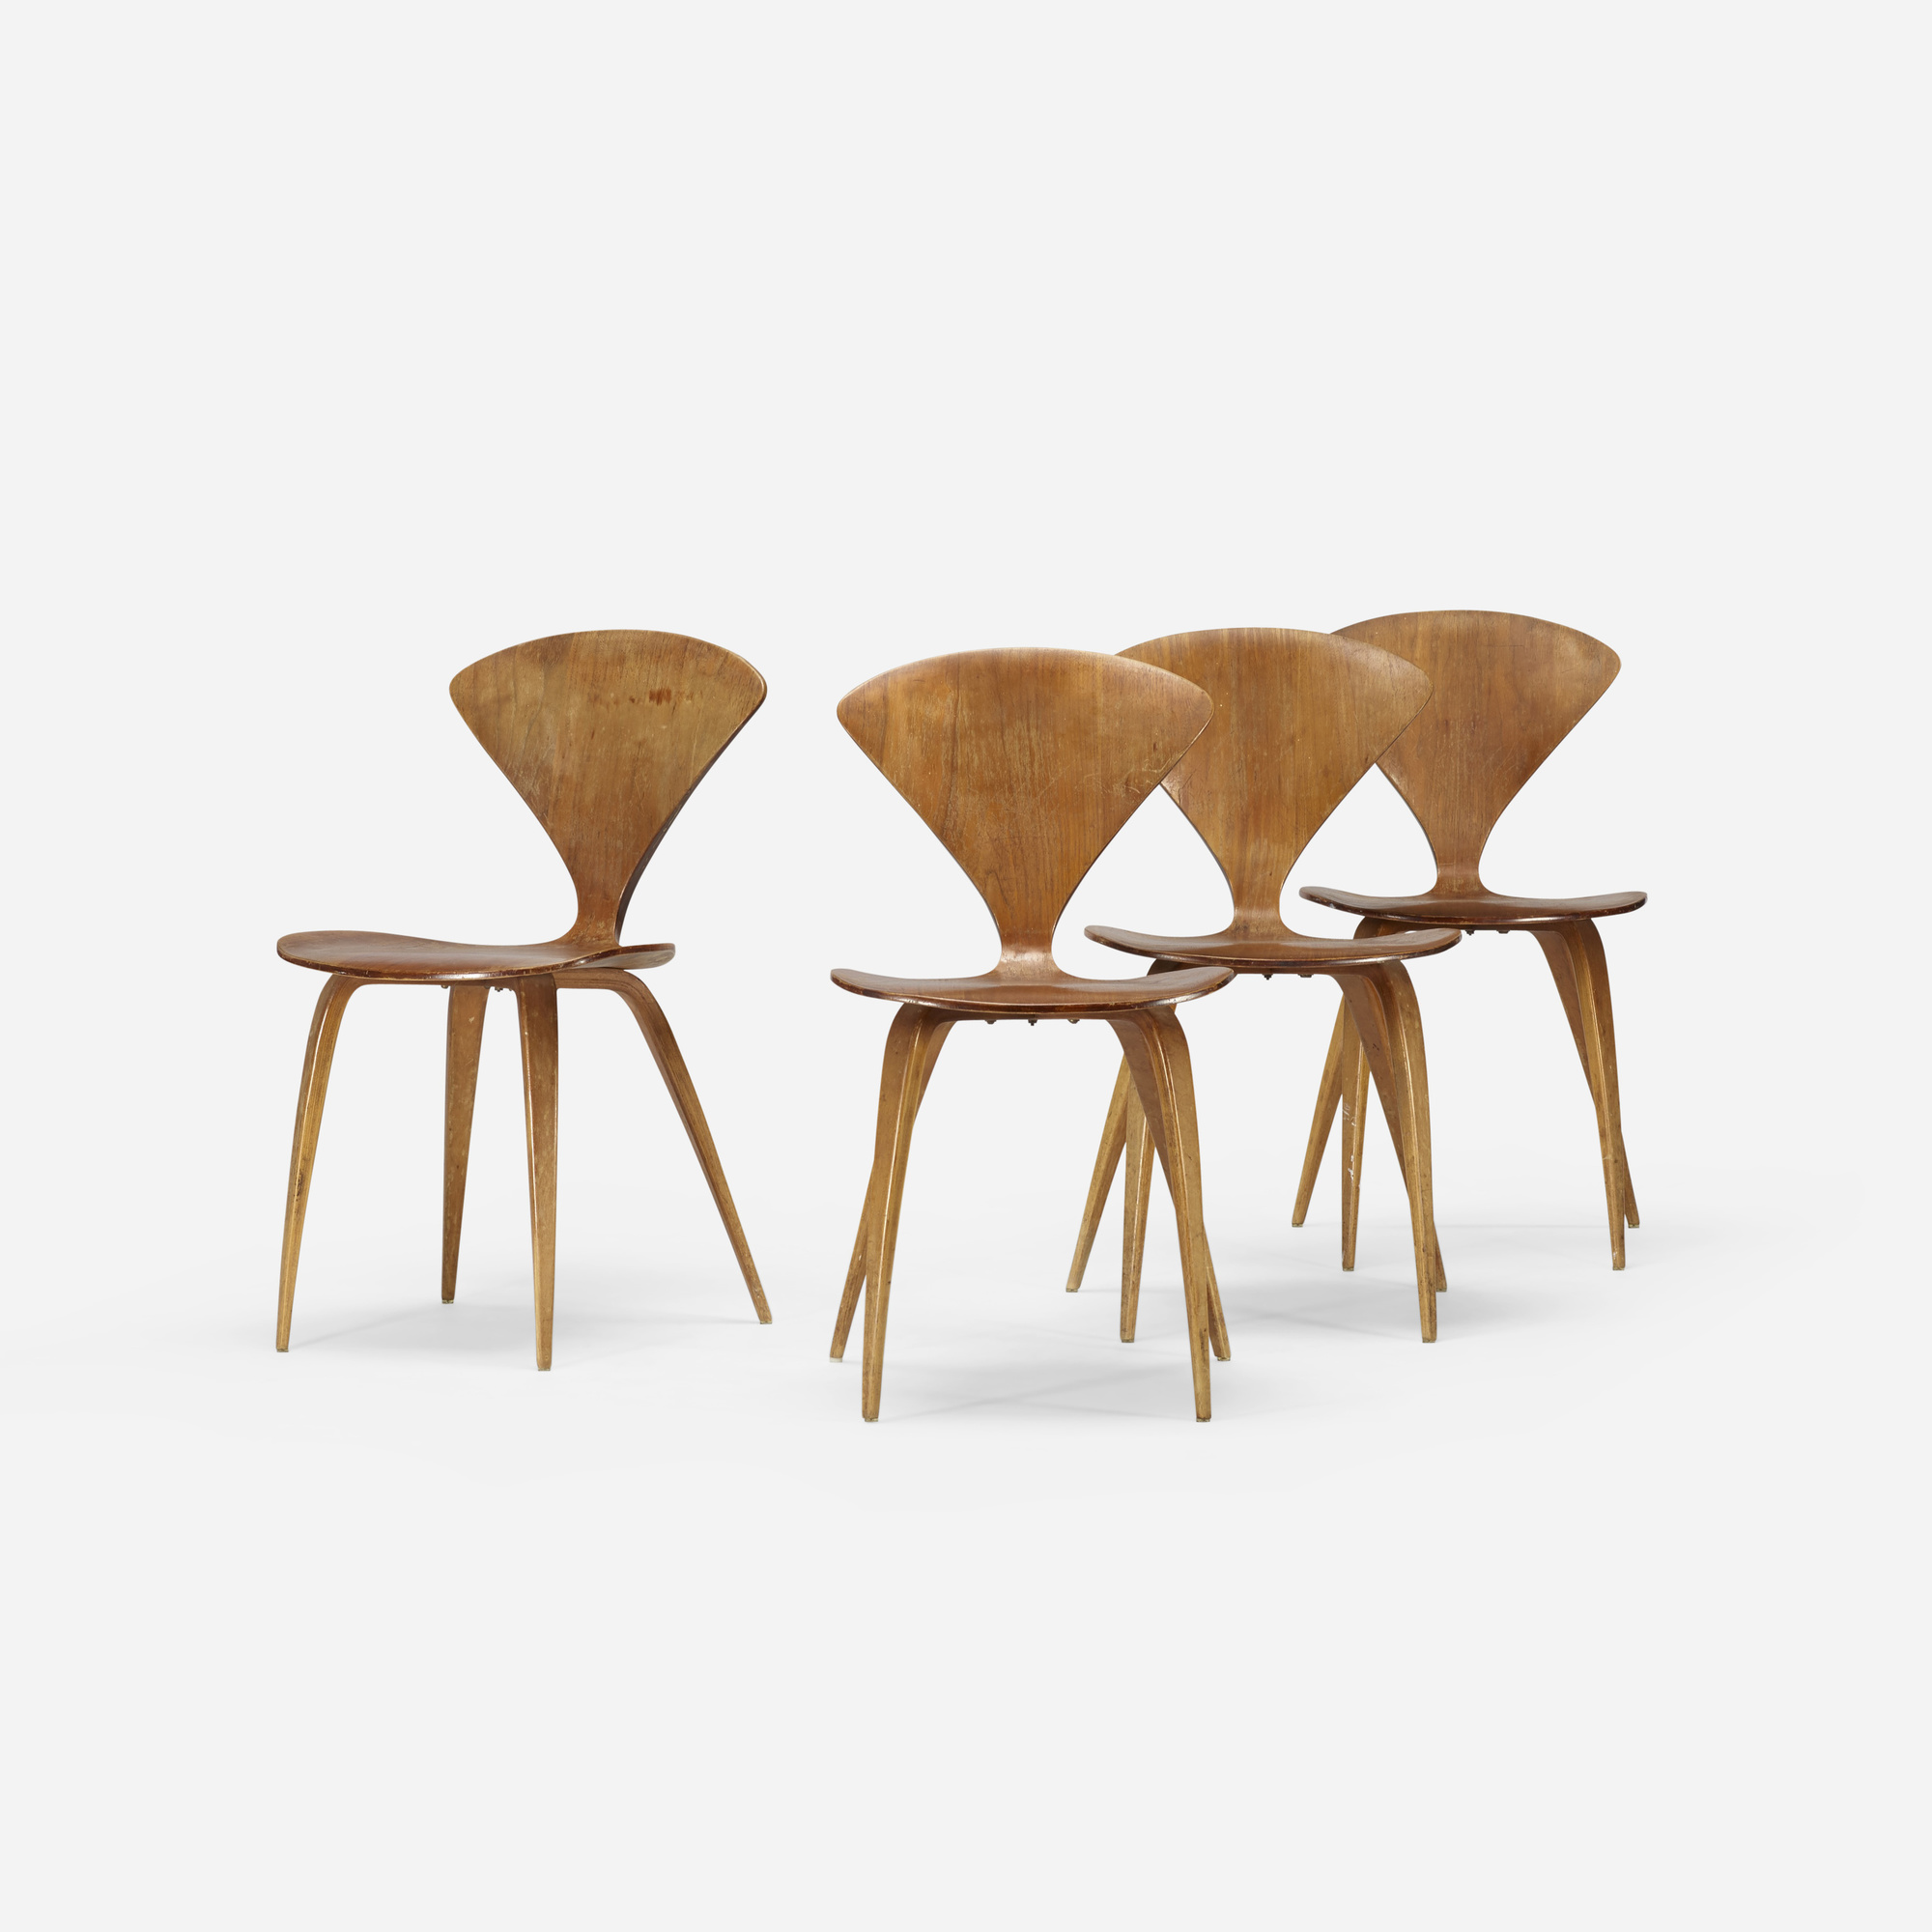 202: Norman Cherner / dining chairs, set of four (2 of 4)